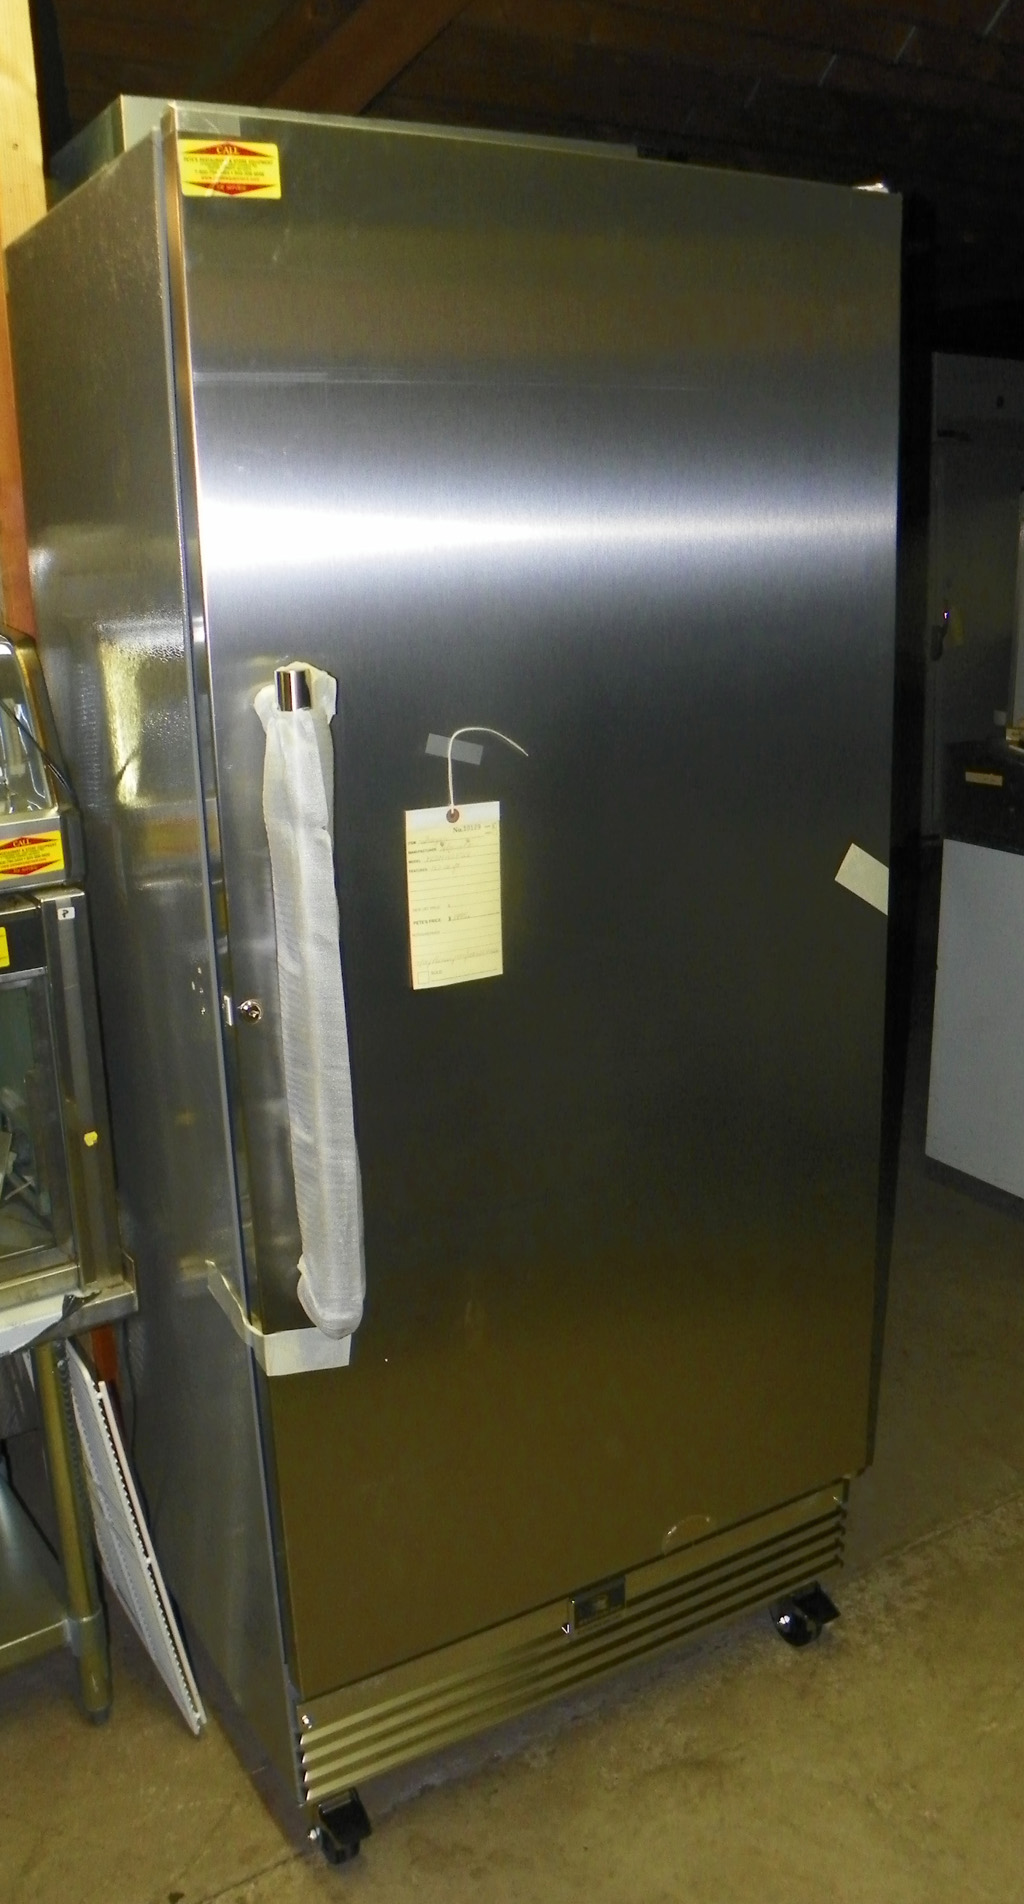 New Kelvinator 1 Door Reach In Freezer - KCBM180FQY